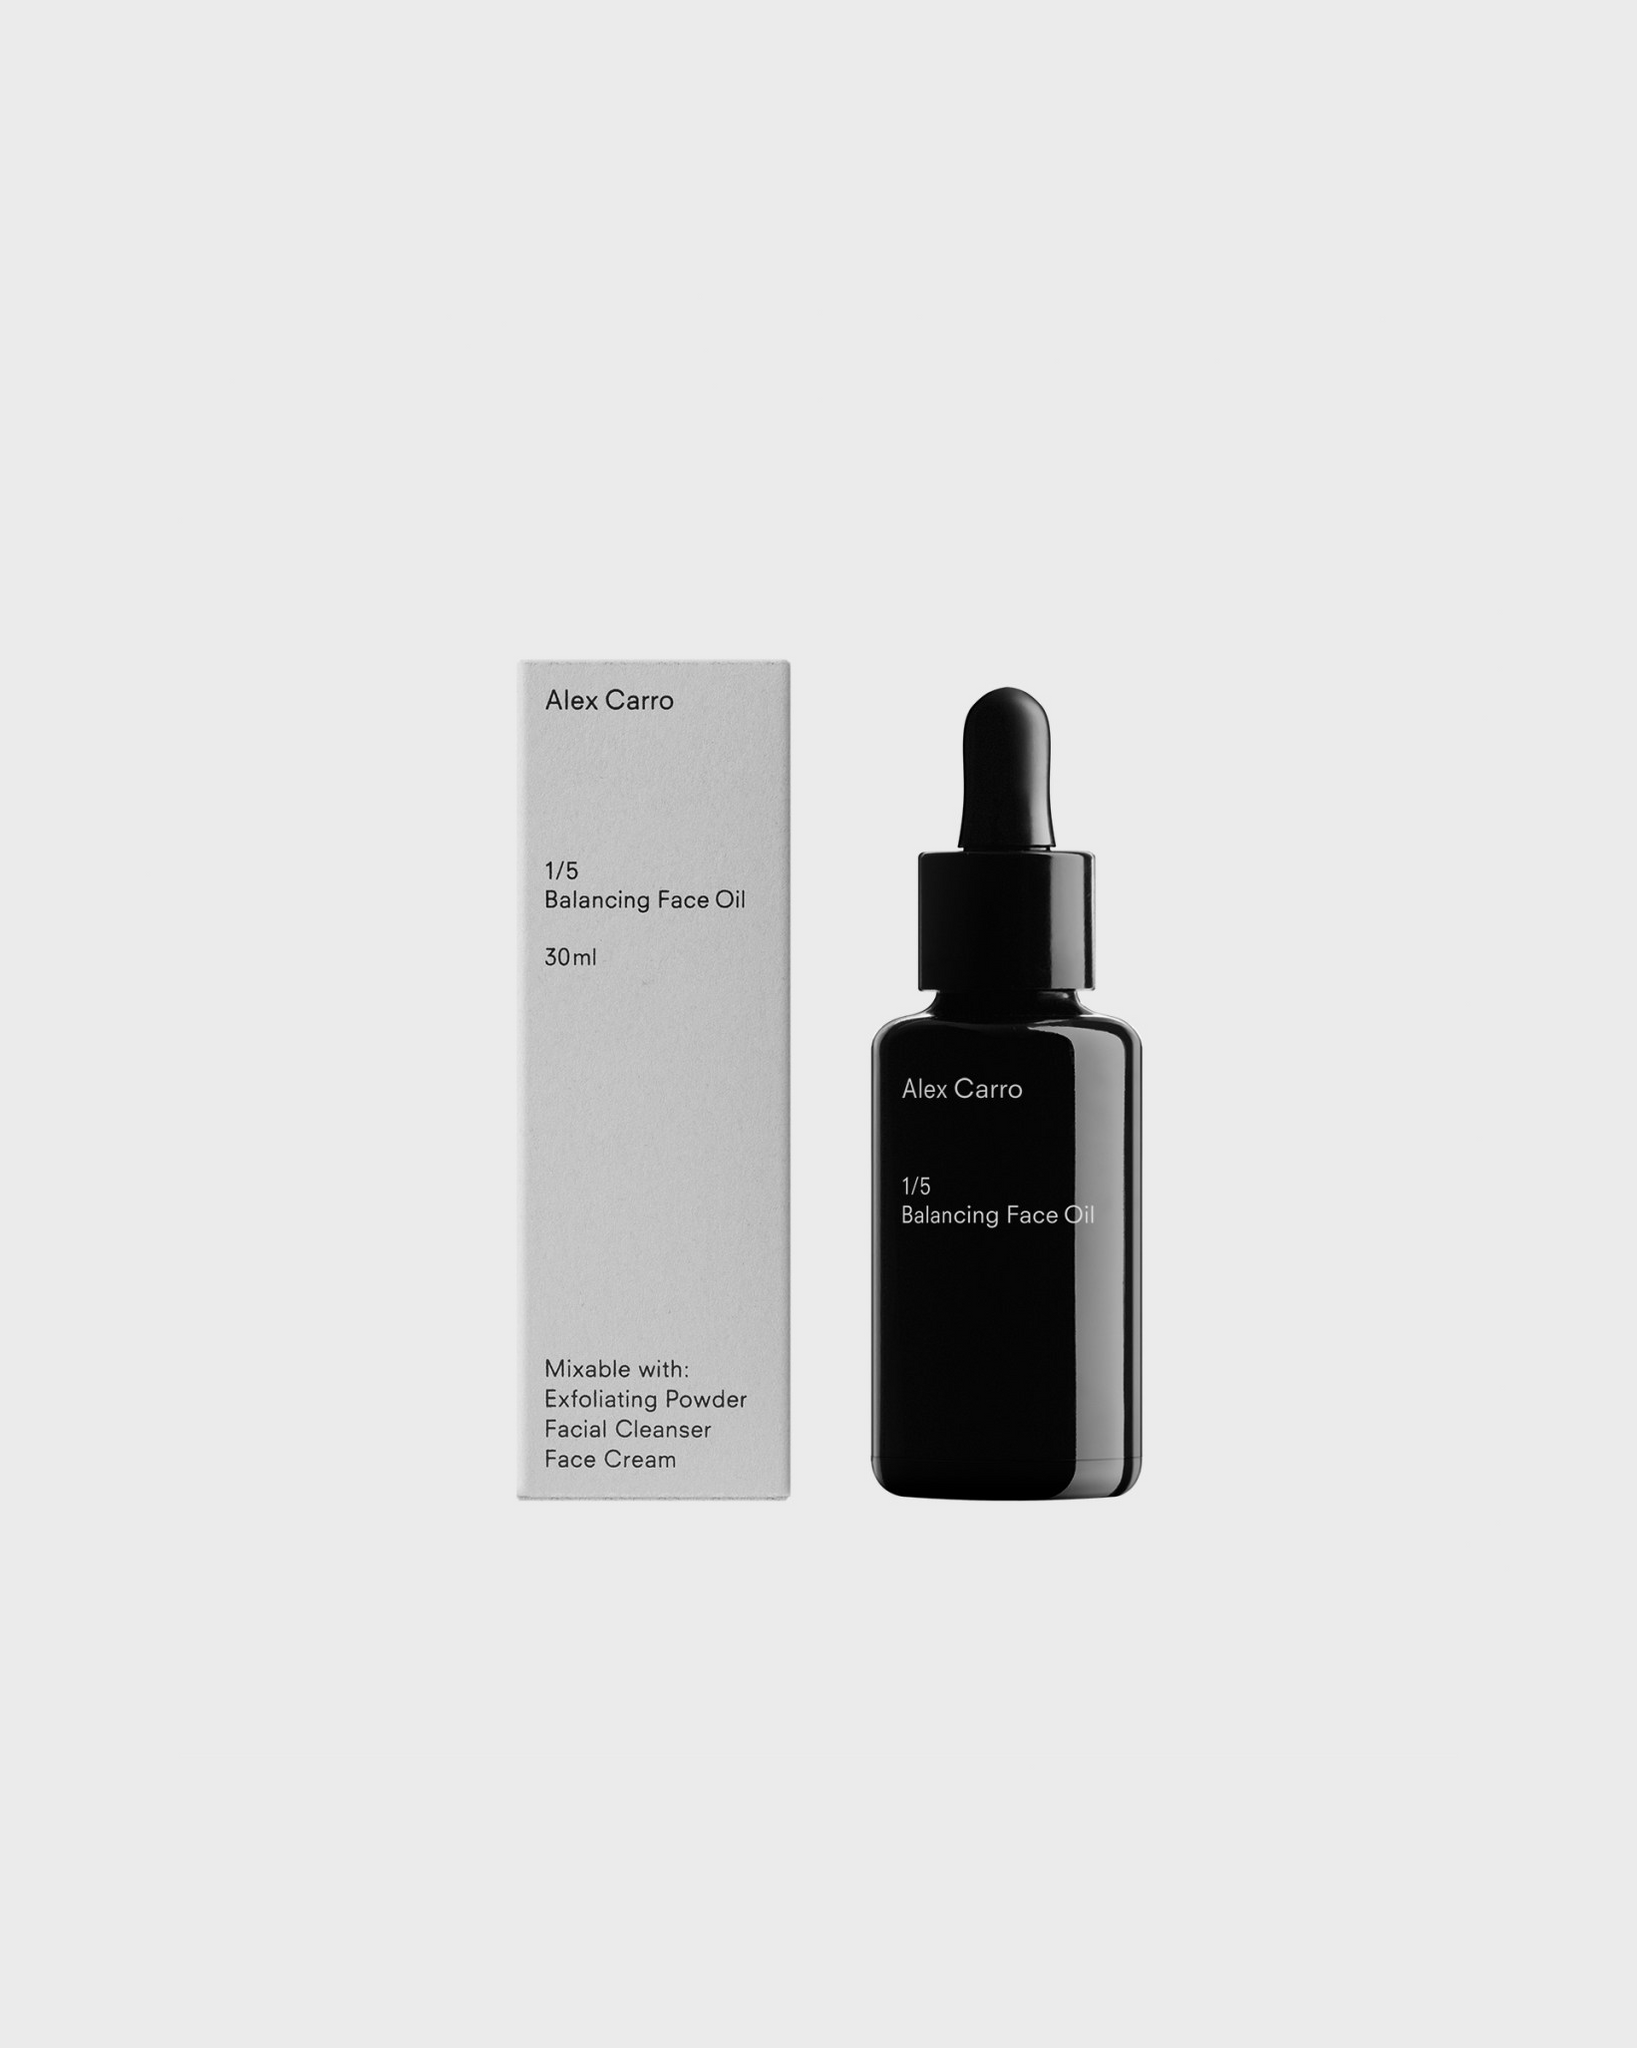 1/5 Balancing Face Oil 30ml